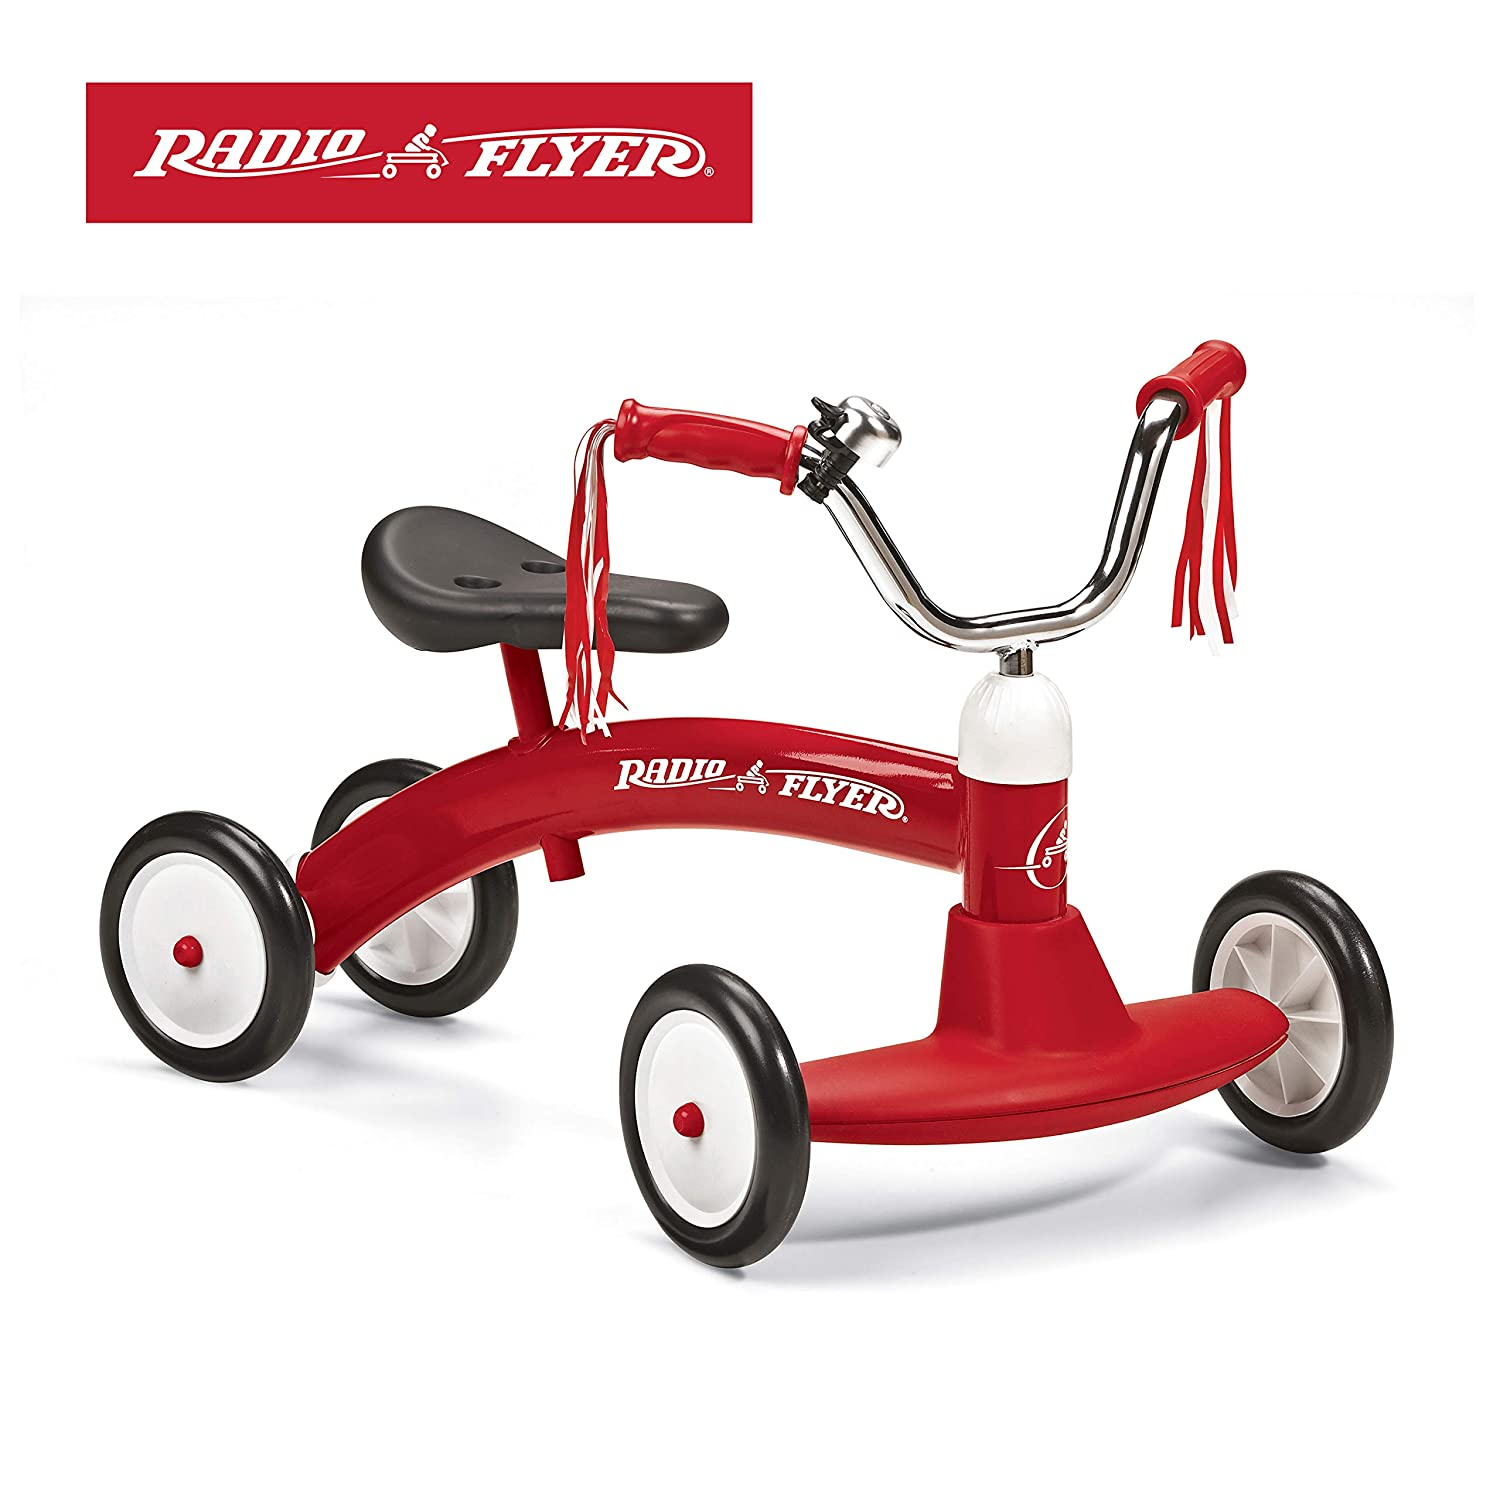 Top 10 Best Tricycle For Toddlers Reviews in 2020 10